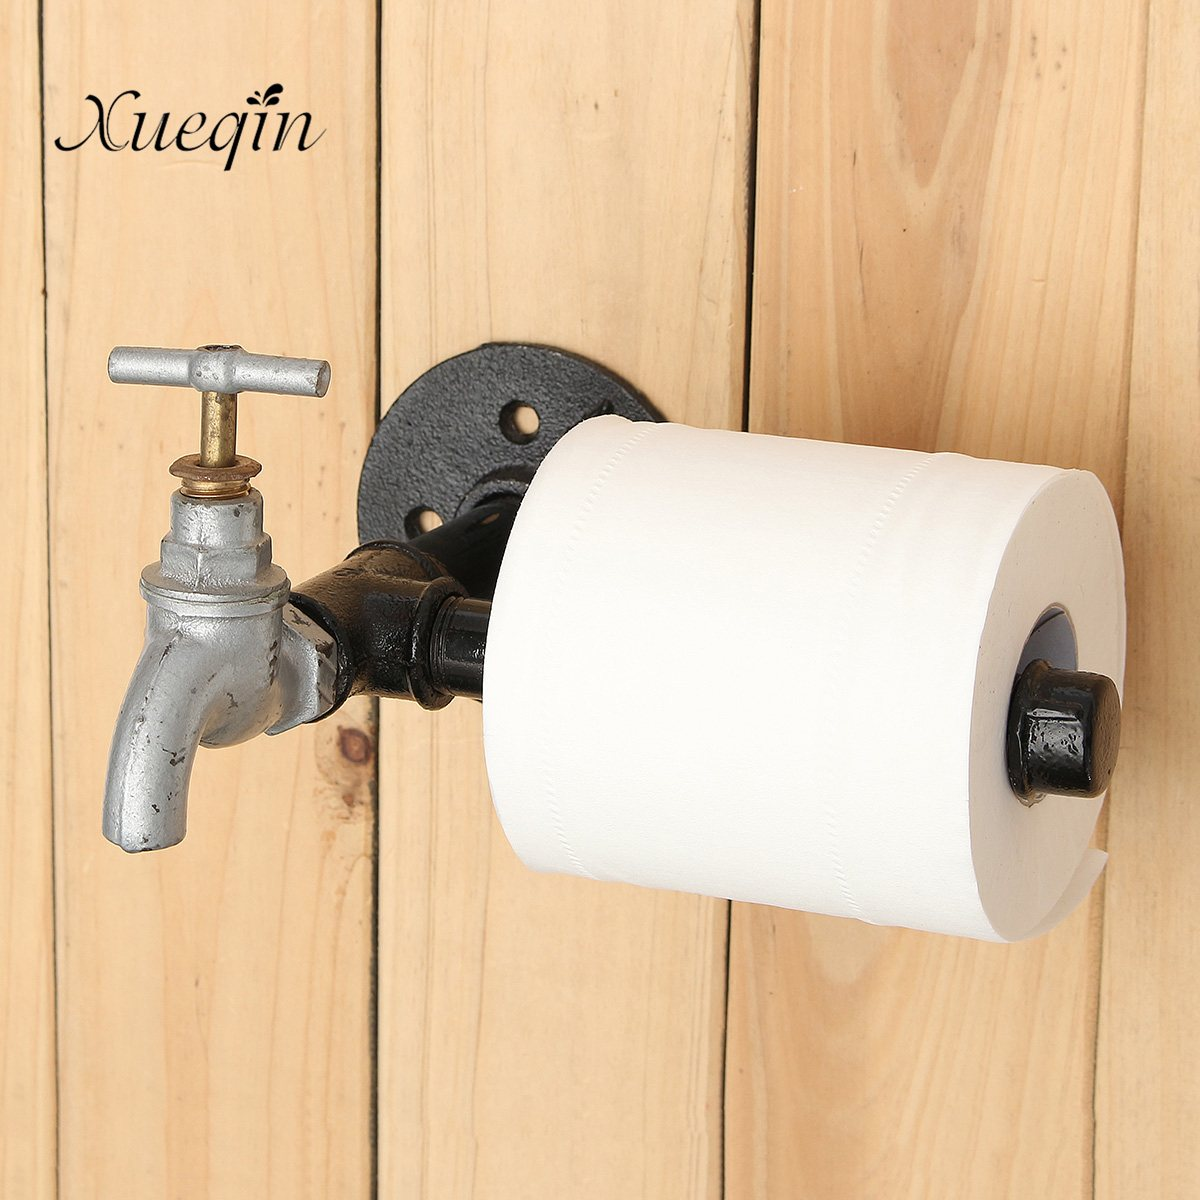 Skillful Knitting And Elegant Design Collection Here Xueqin New Industrial Rustic Style Black Iron Pipe Metal Toilet Paper Roll Holder Wall Mounted Home Bathroom Hardware Supplies To Be Renowned Both At Home And Abroad For Exquisite Workmanship Bathroom Fixtures